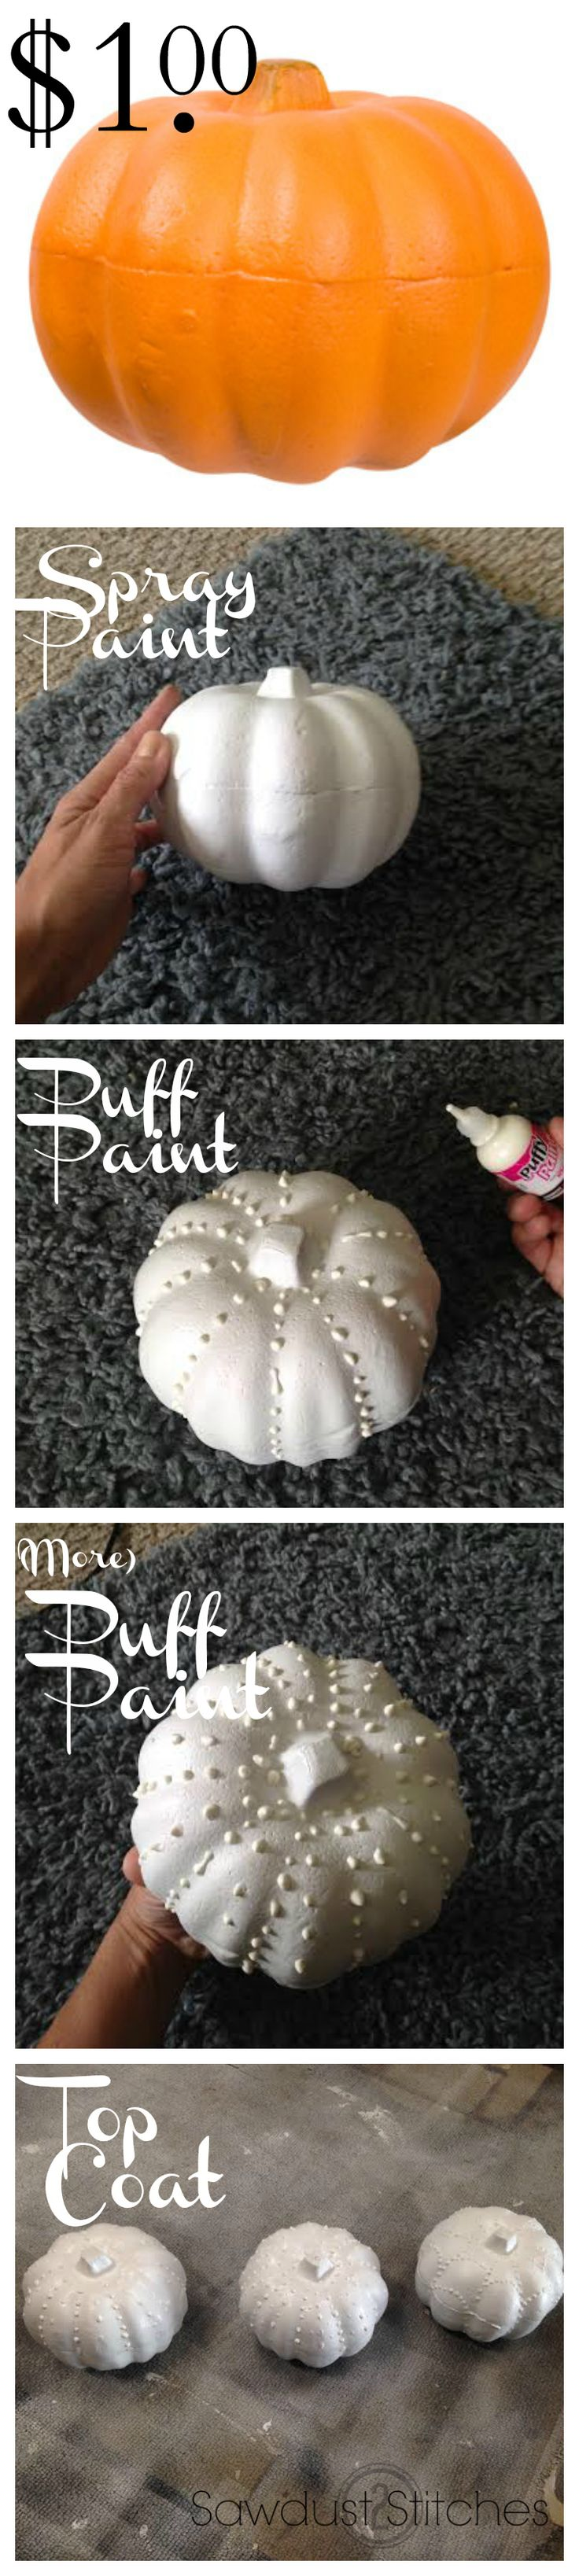 65 best Dollar Store Galore images on Pinterest